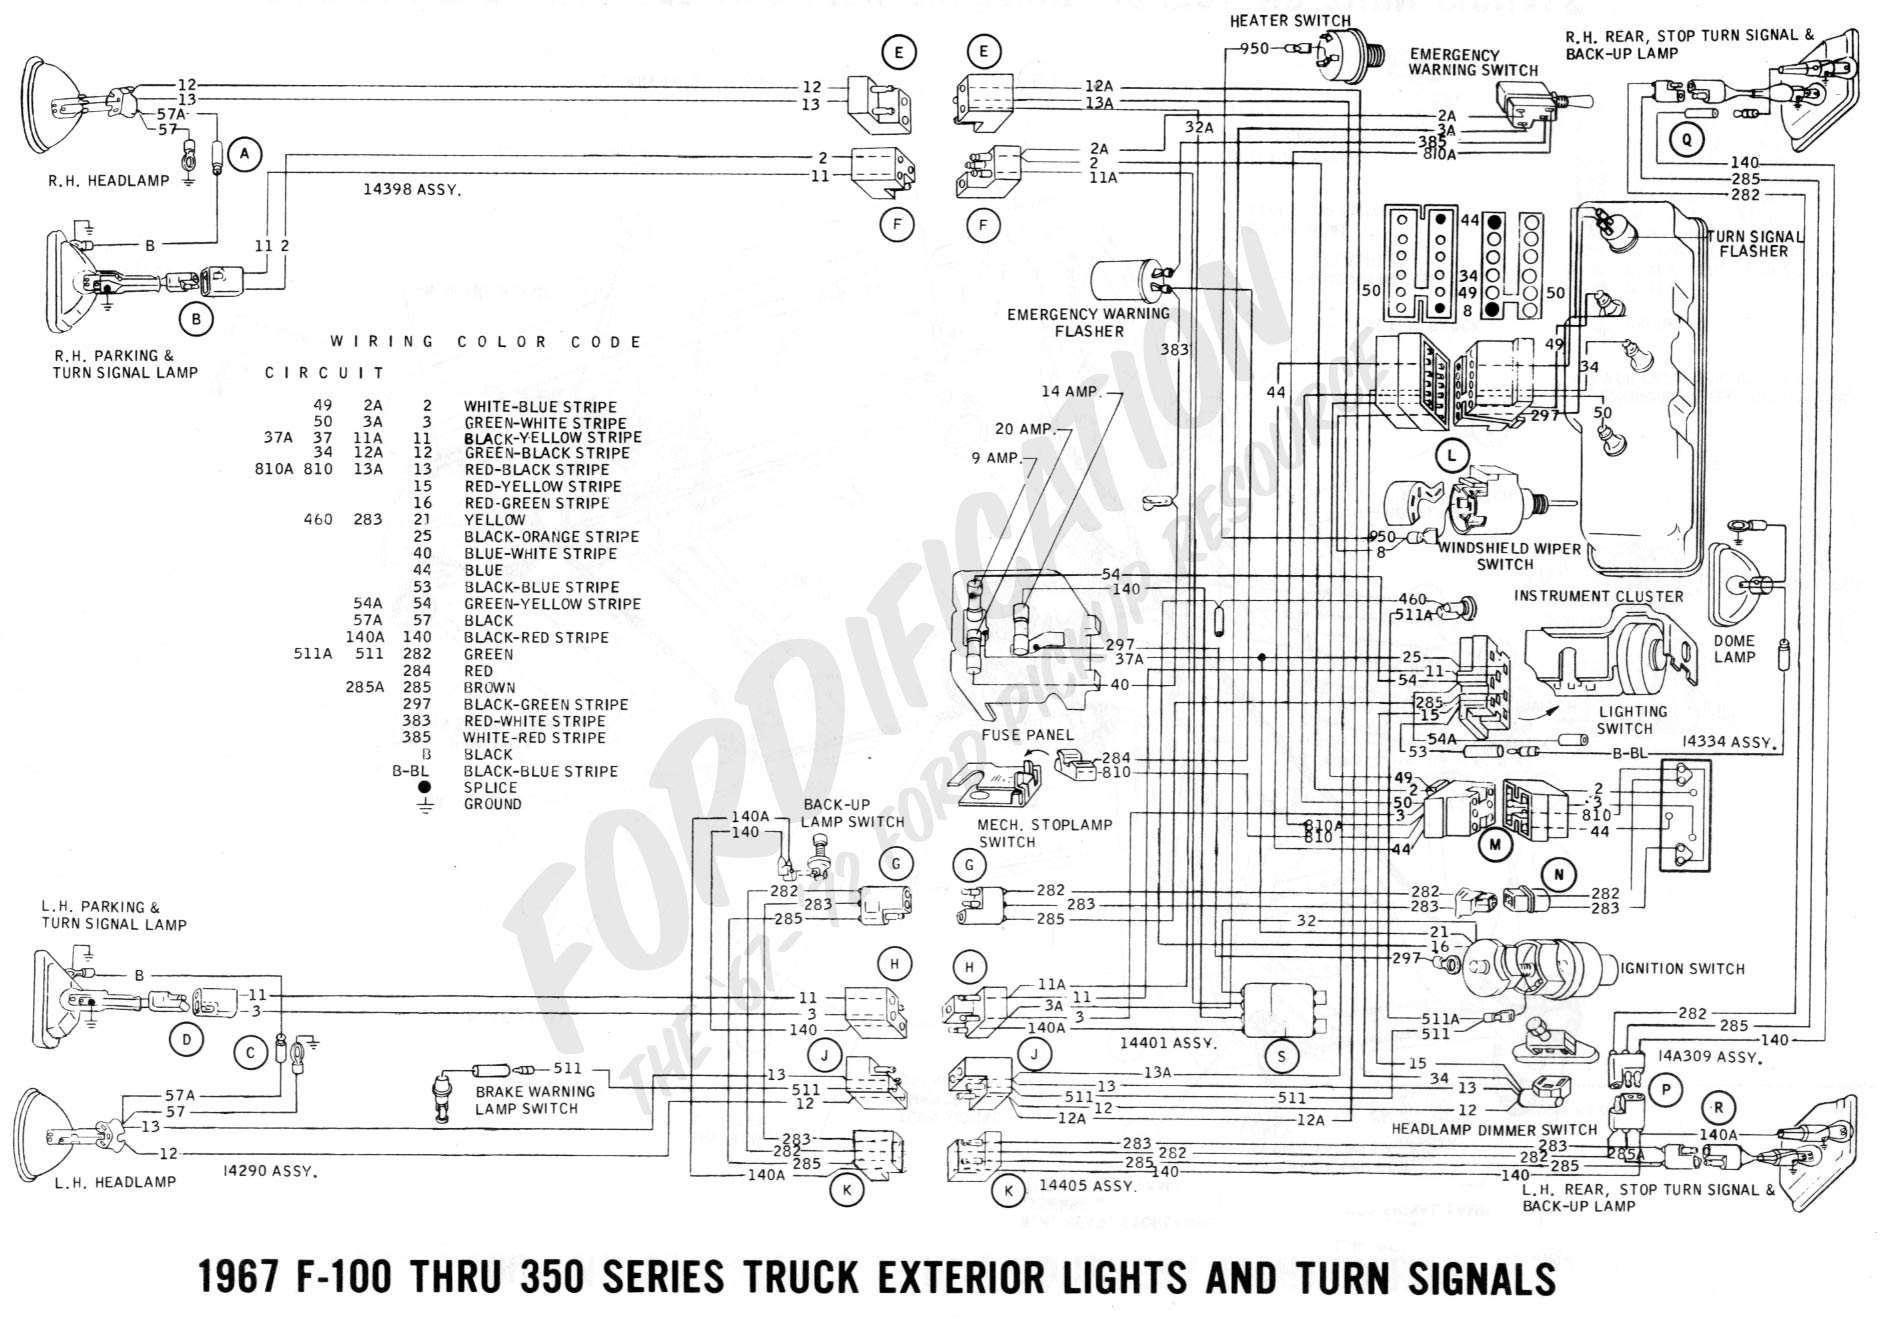 91 Mustang Turn Signal Wiring Diagram